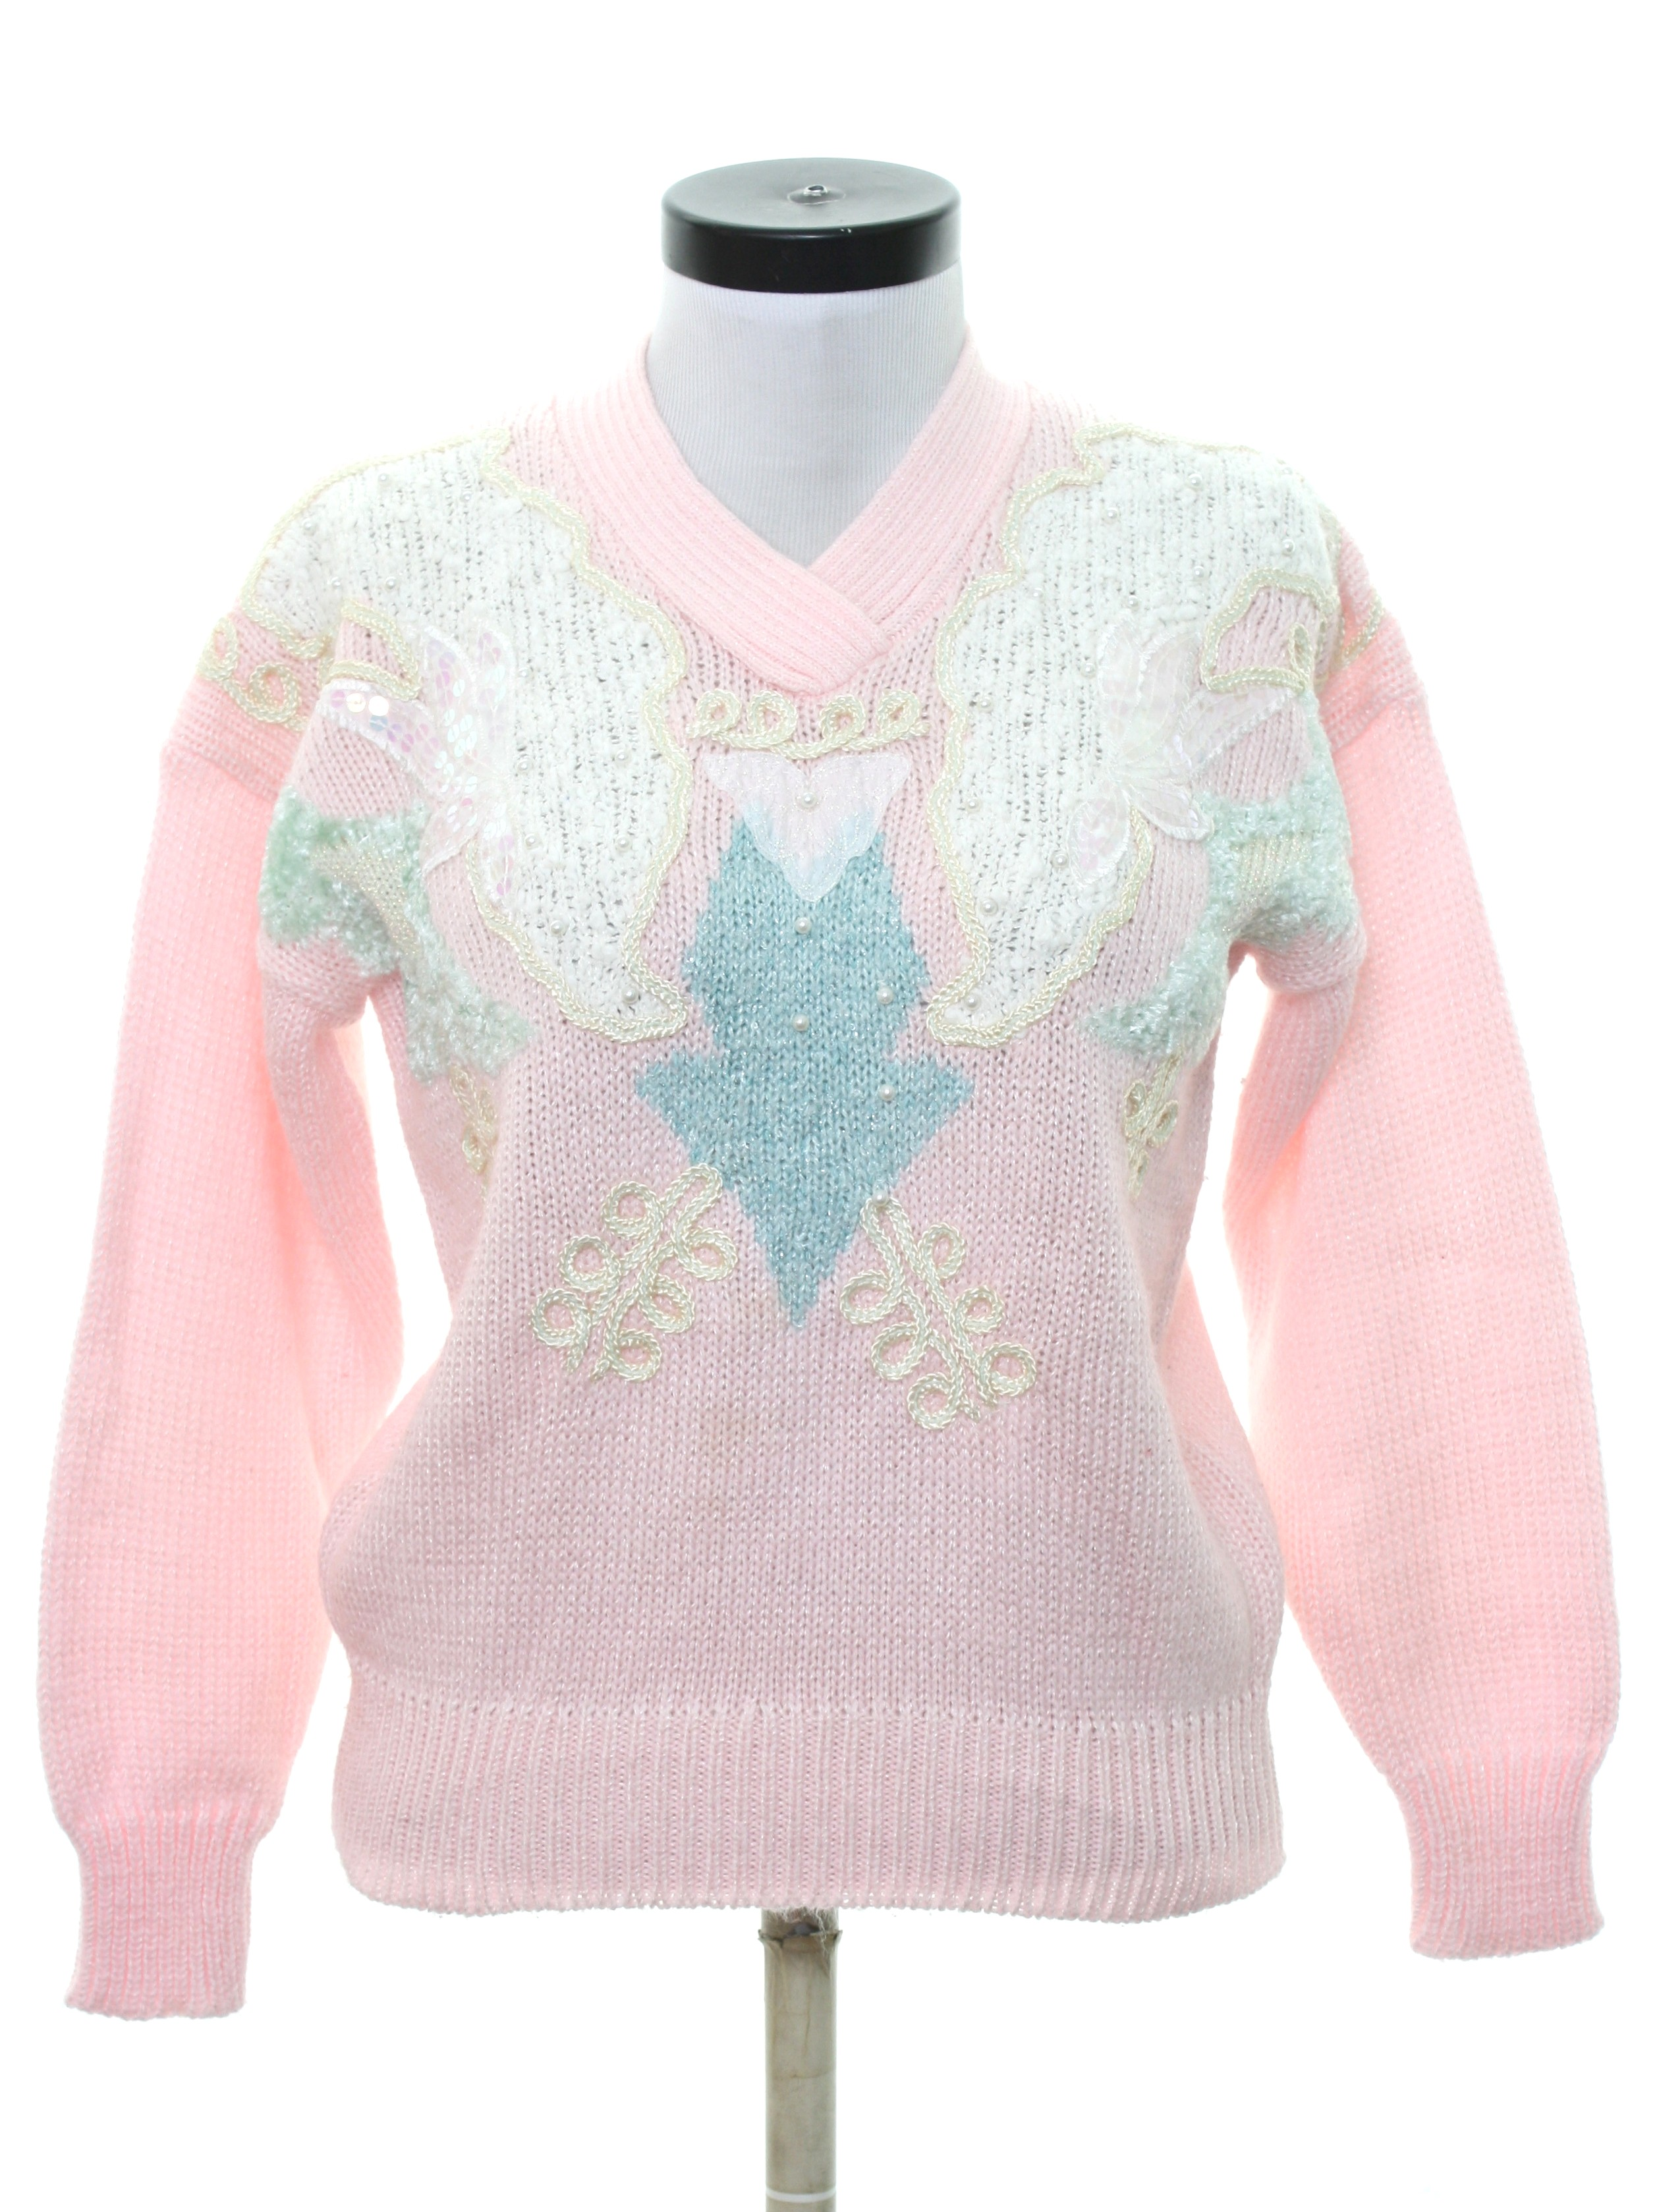 8243c355bf1 Retro 80's Beaded Sweater: 80s -Jaclyn Smith- Womens pink background ...